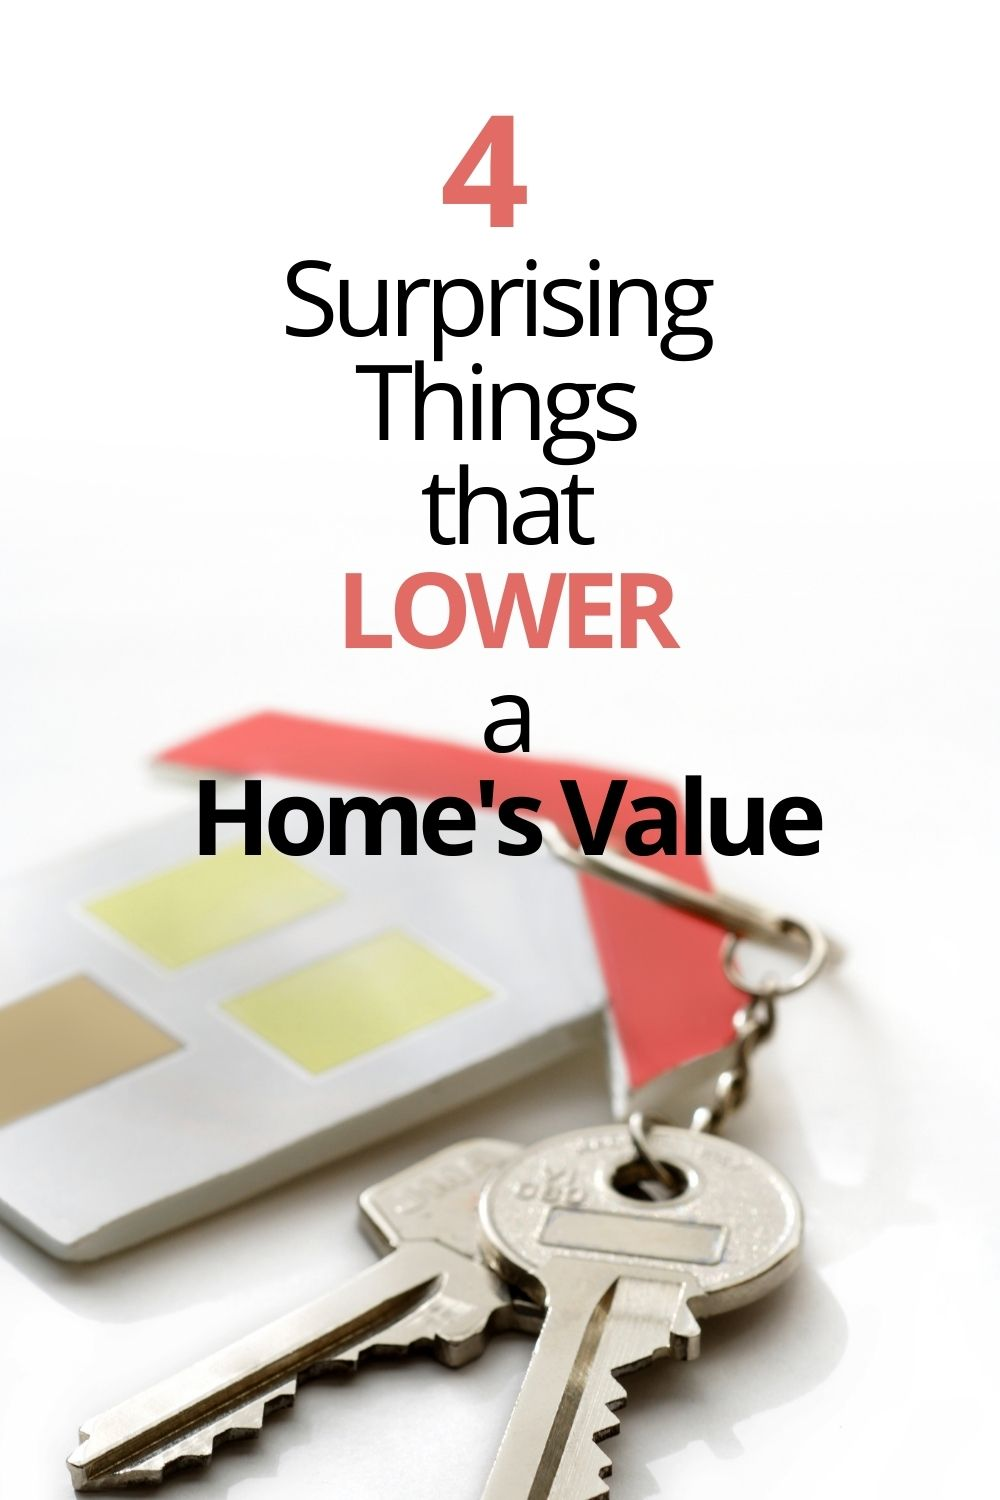 4 Surprising Things that Lower a Home's Value